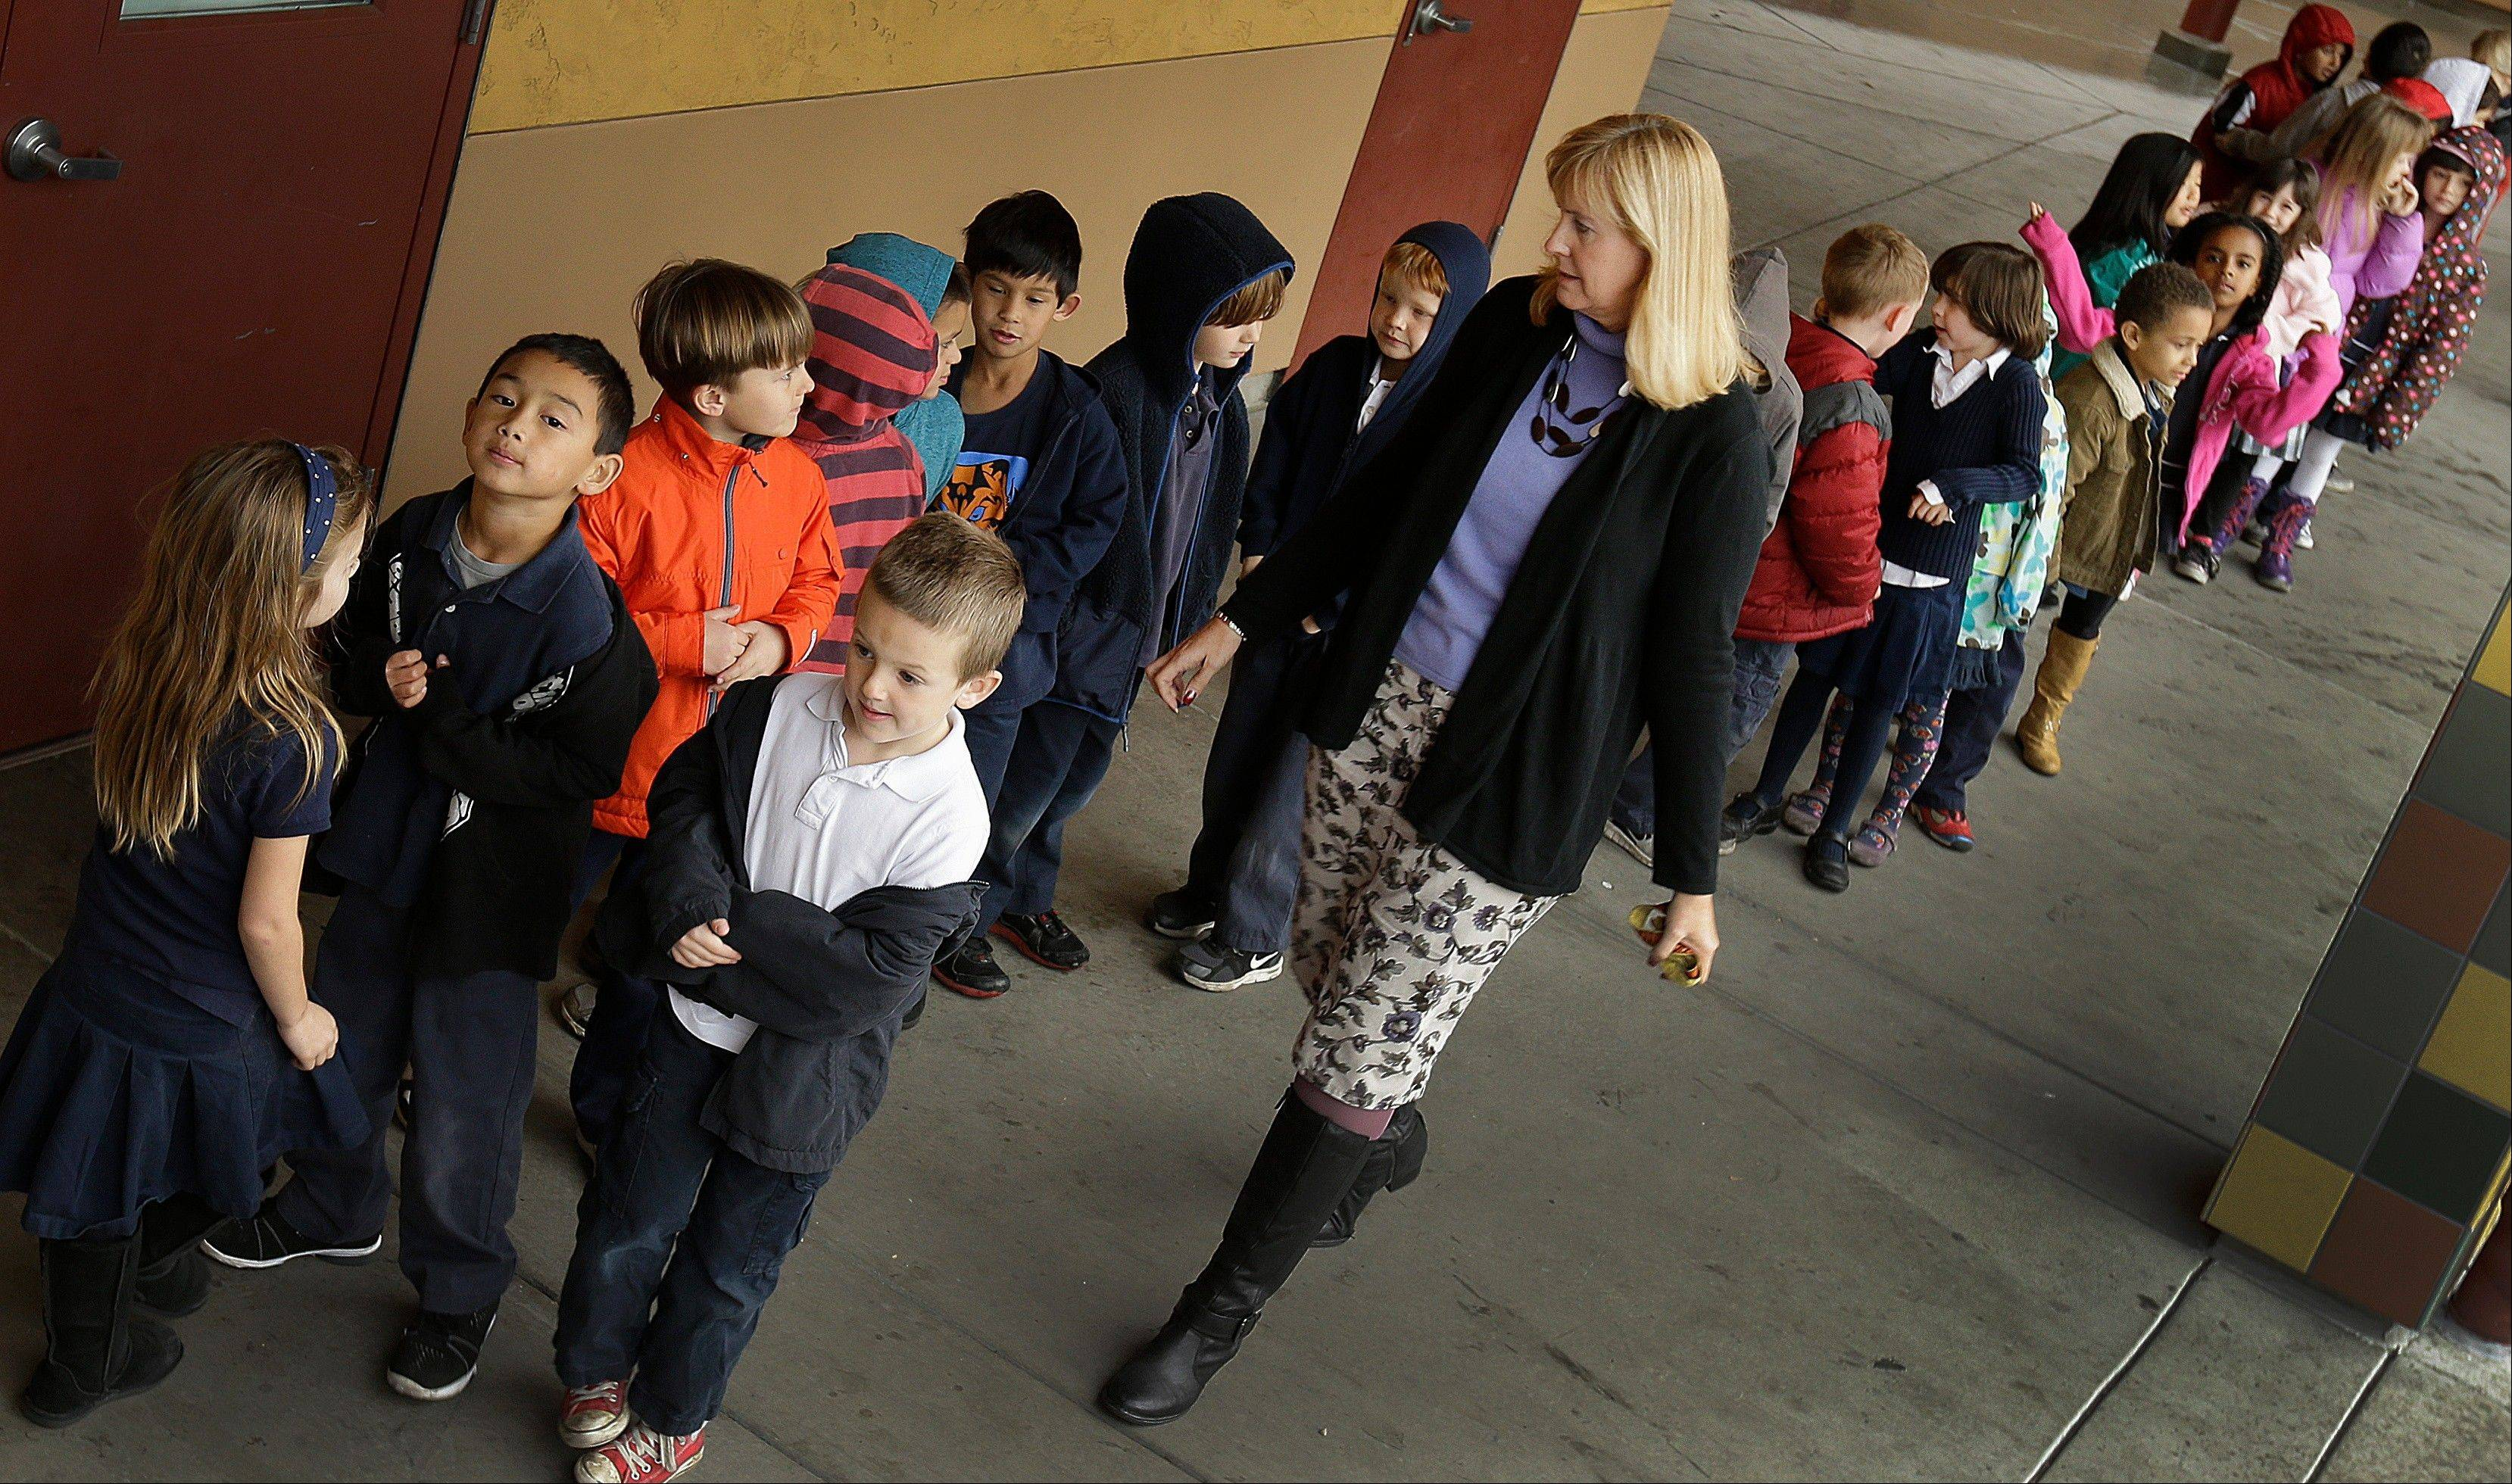 First grade teacher Lynda Jensen walks with her class of 30 children at Willow Glenn Elementary School in San Jose, Calif. The Common Core State Standards have been adopted by 45 states and the District of Columbia with the goal of making sure the nation�s high school graduates leave school ready for college or a job.